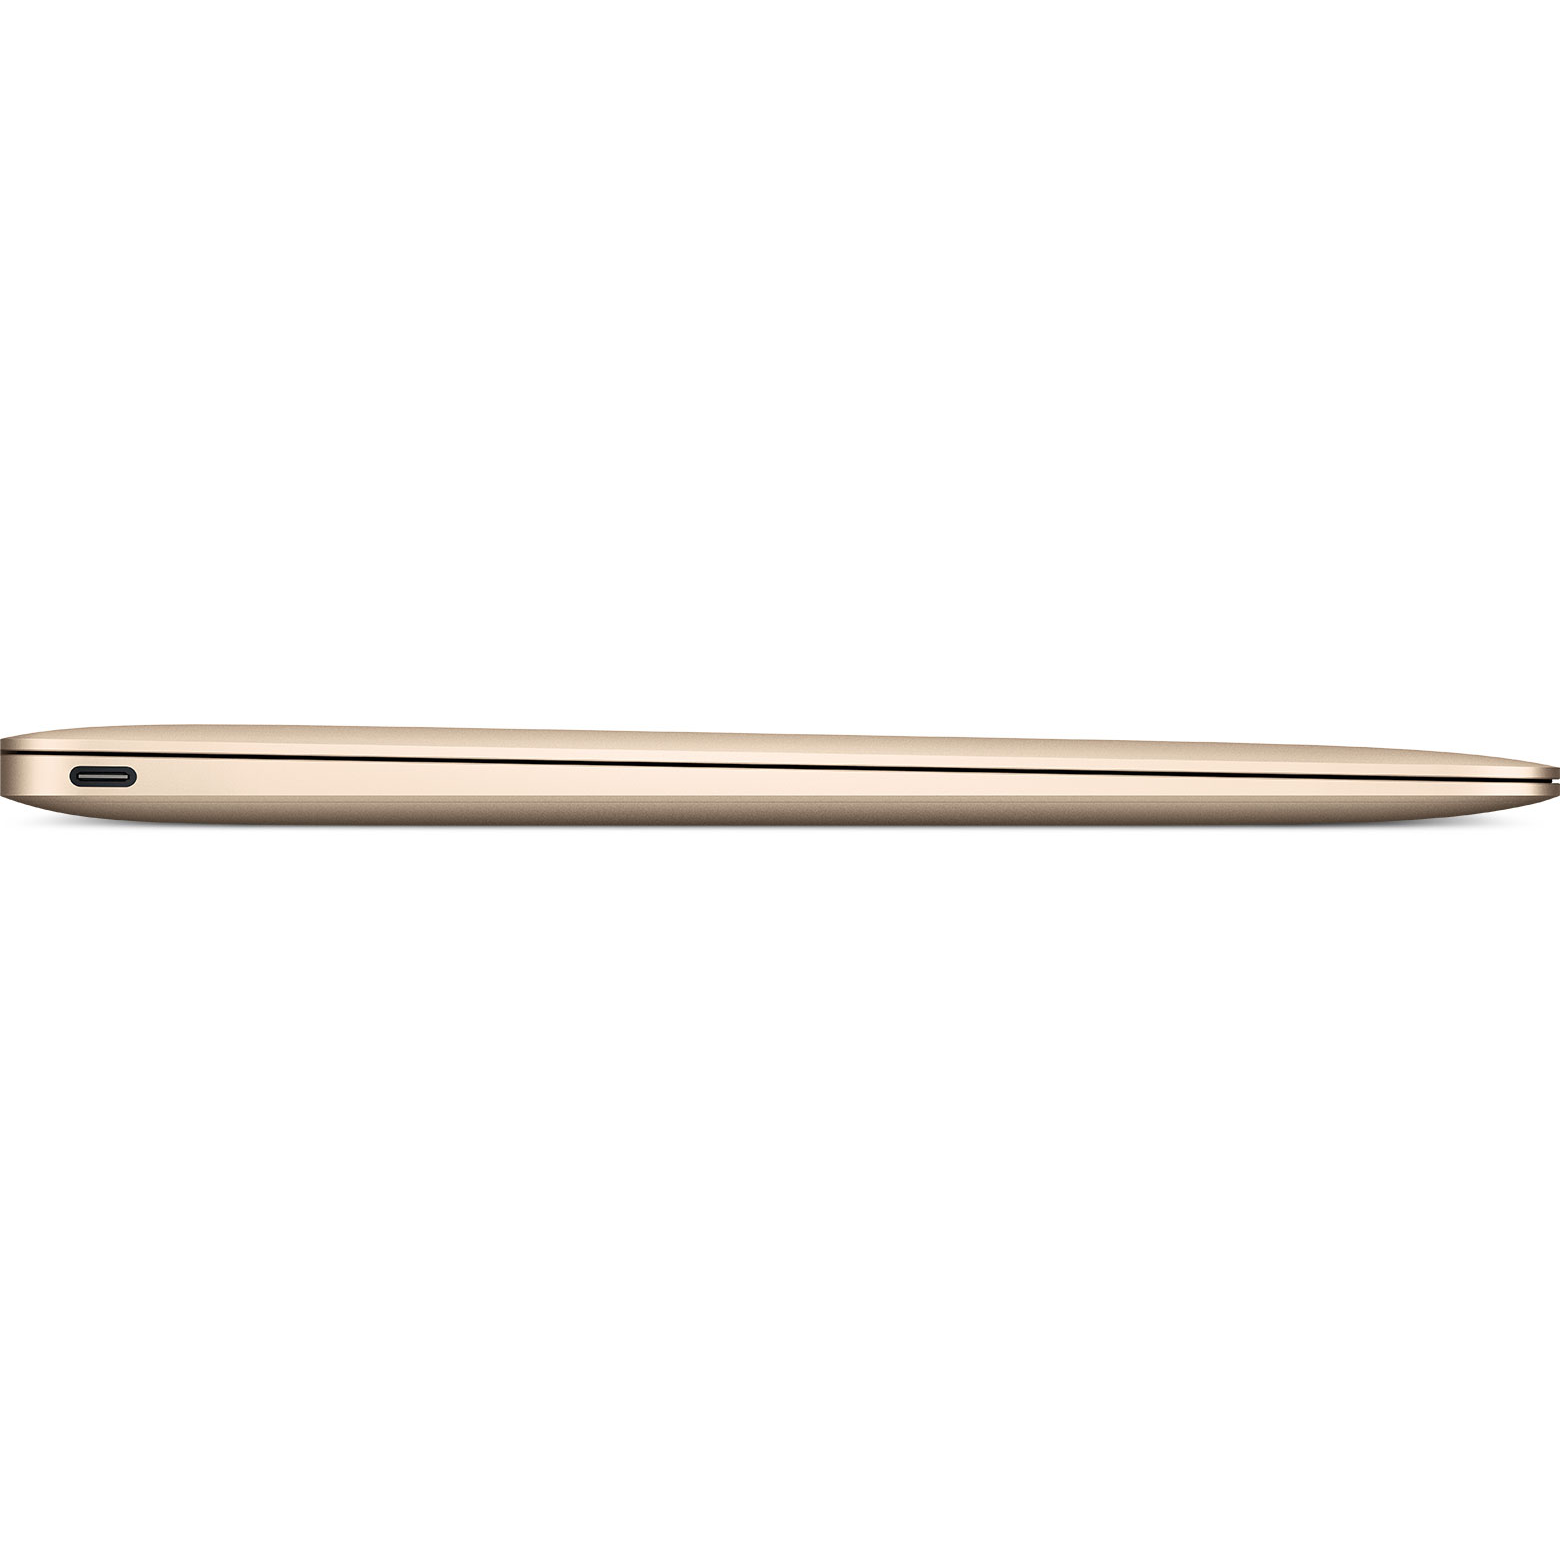 "Ноутбук Apple MacBook 12"" Retina 256 GB Flash Gold (MNYK2), картинка 4"